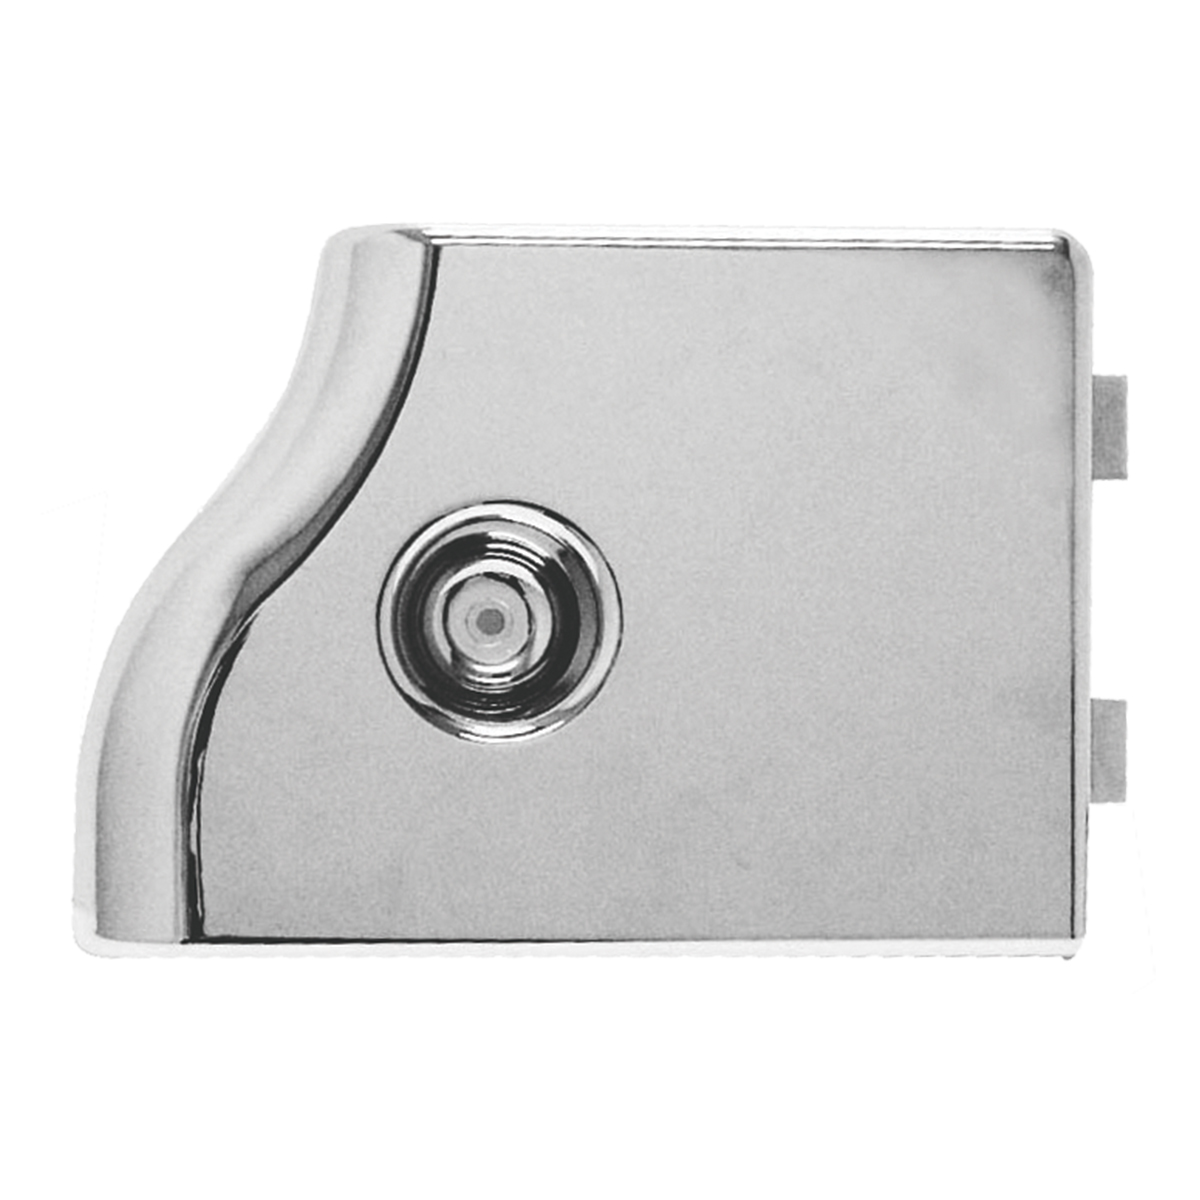 68341 Chrome Plastic A/C Filter Door for Peterbilt